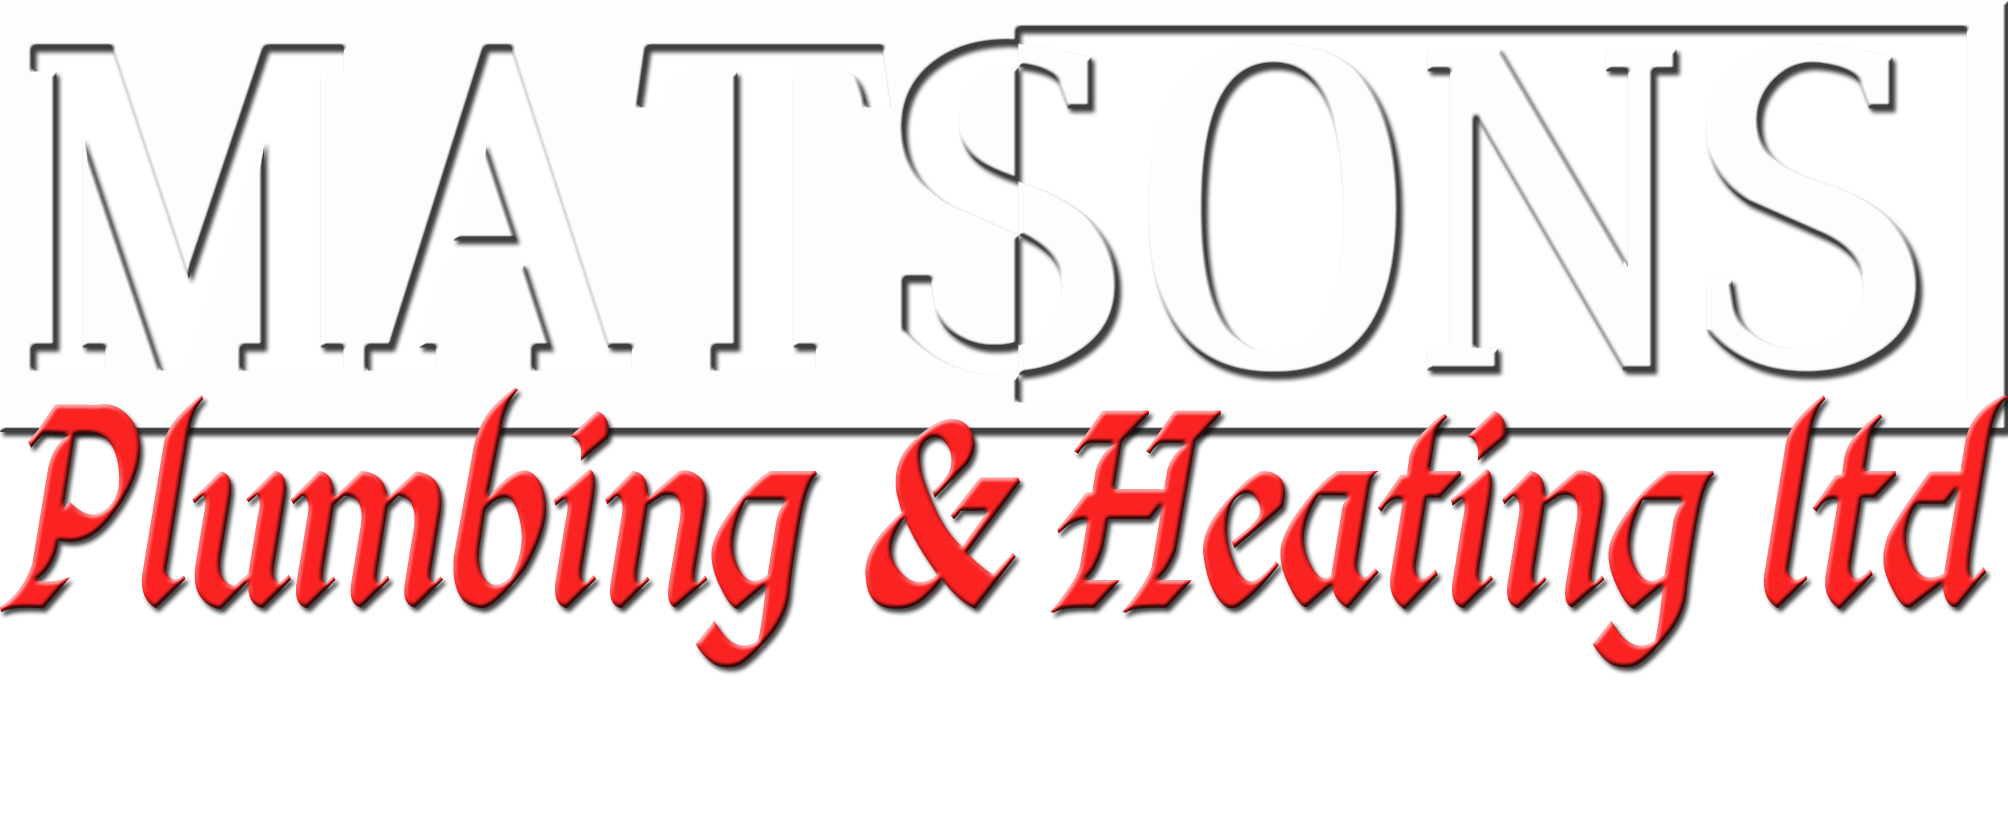 Matsons Plumbing & Heating Ltd